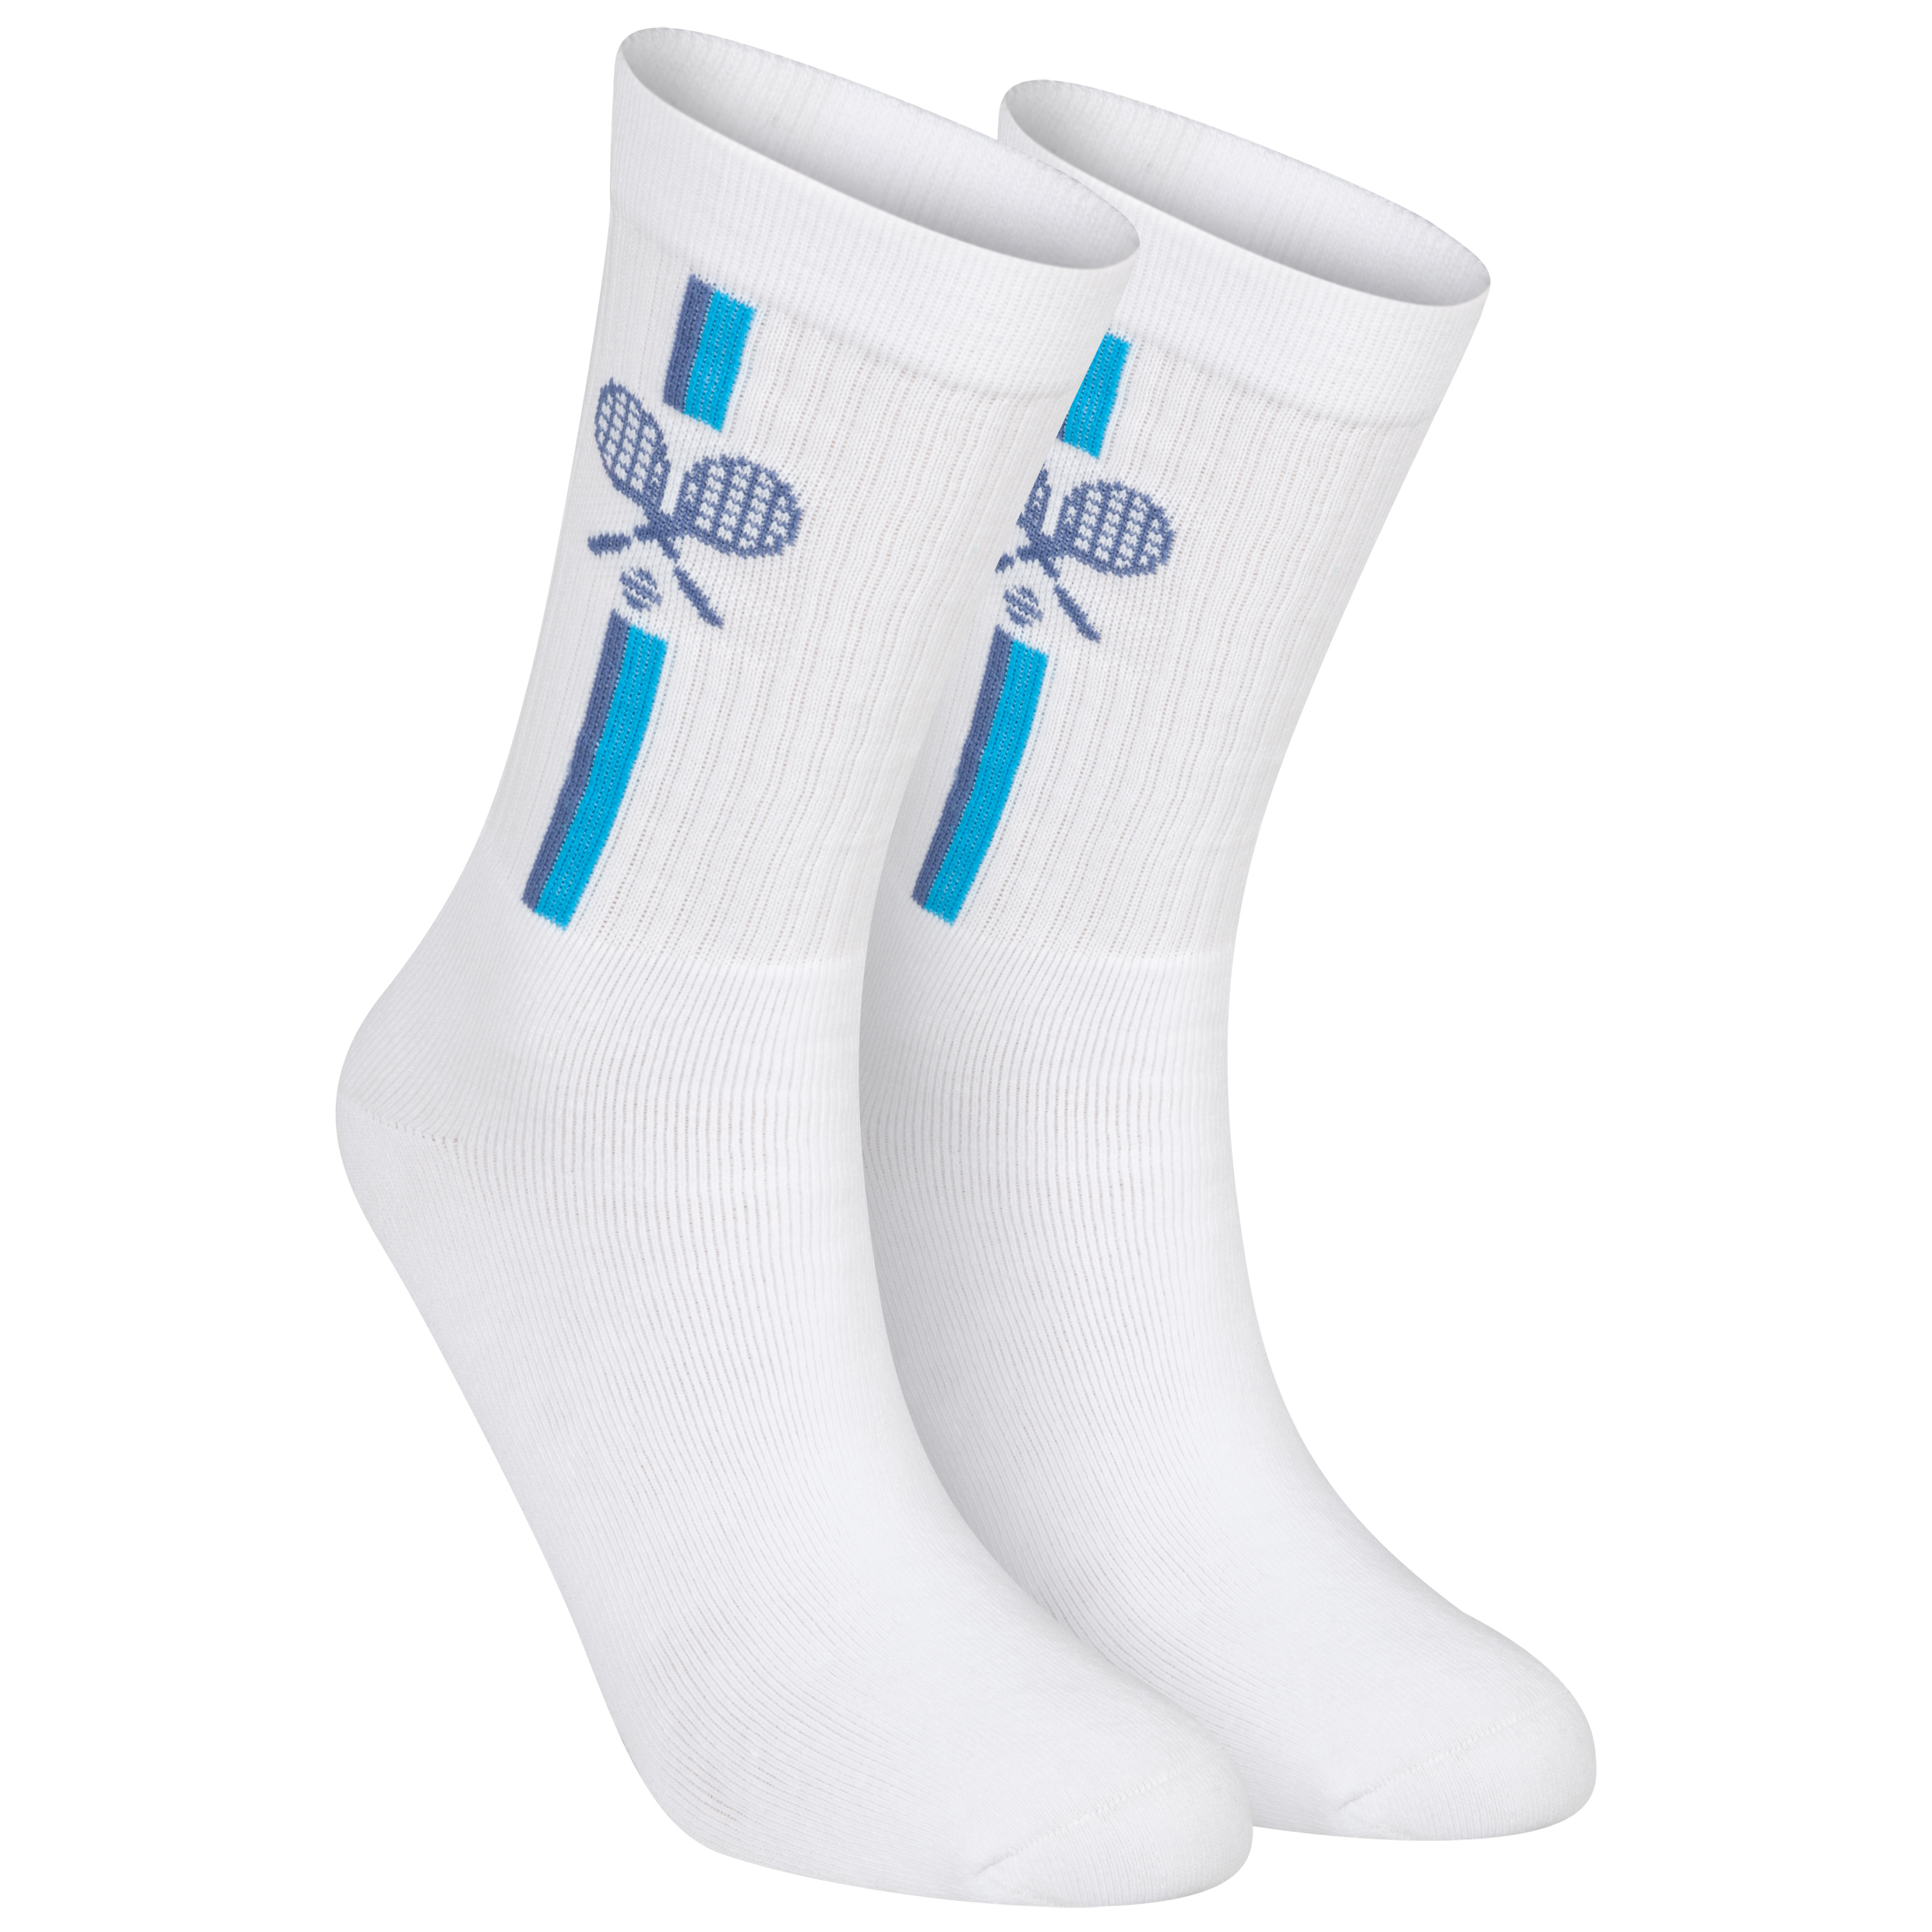 Wimbledon Player Socks - Boys - White